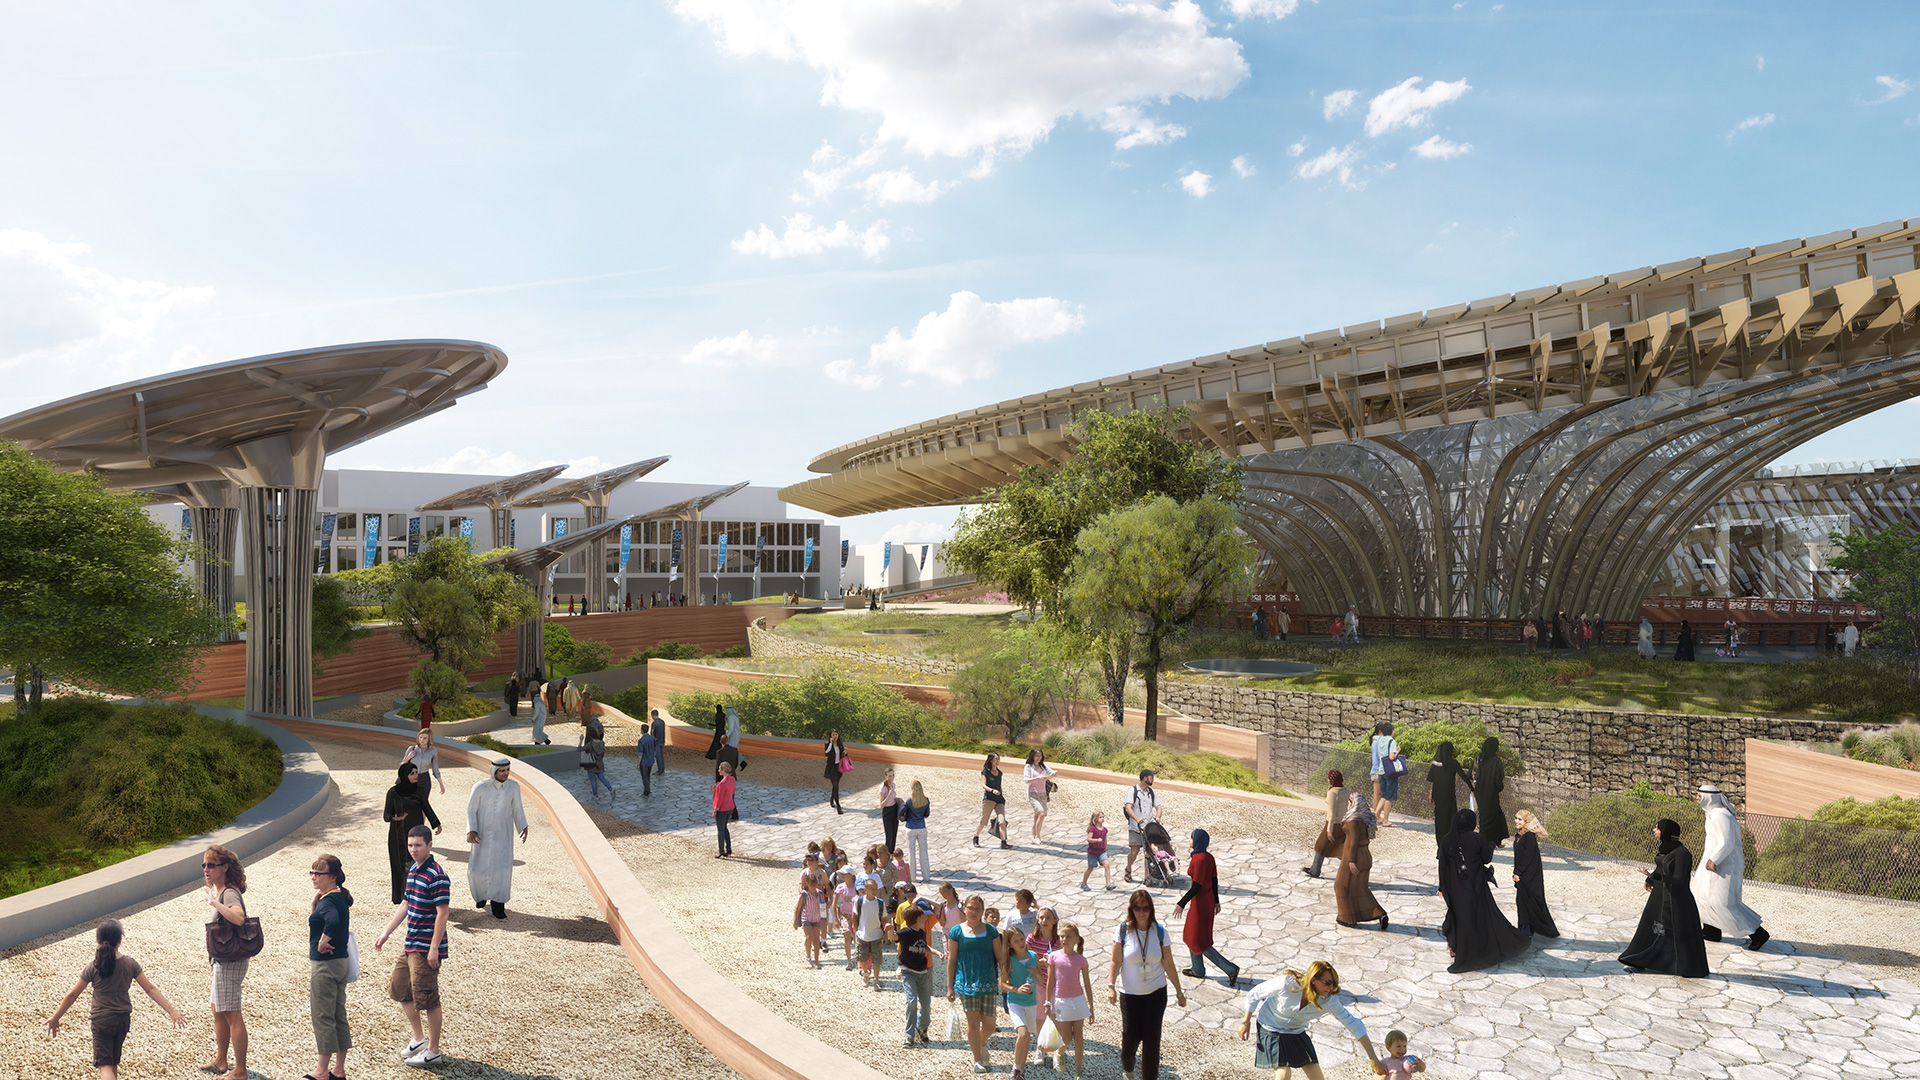 The Sustainability Pavilion designed by Grimshaw Architects | Sustainability | Pavilion | Expo 2020| Dubai| STIRworld